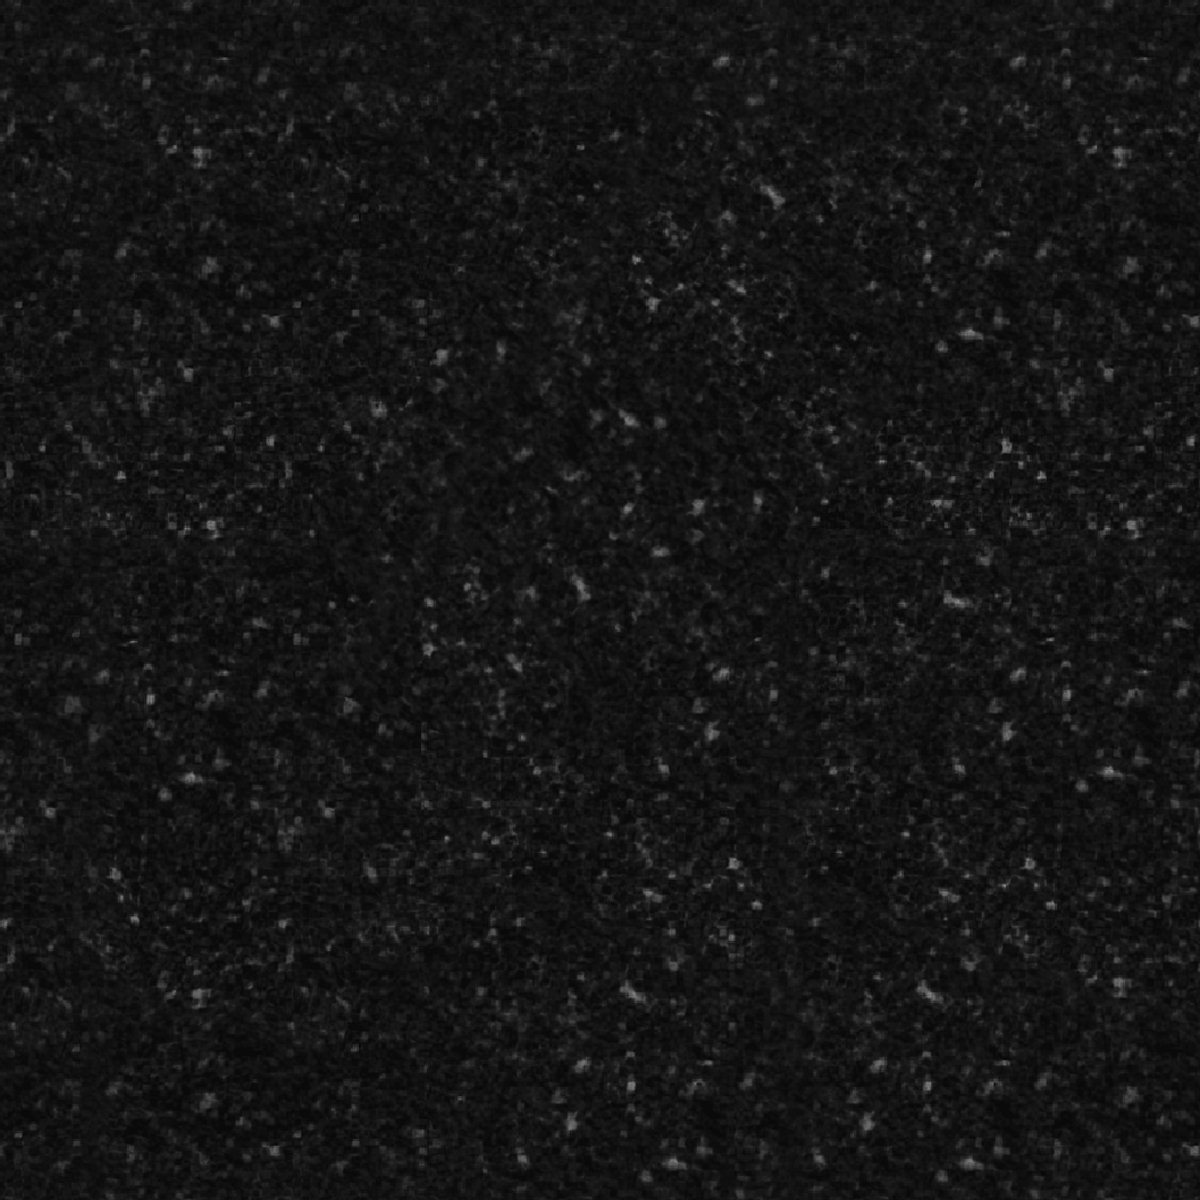 Black Galaxy Granite Texture Seamless | www.imgkid.com ...